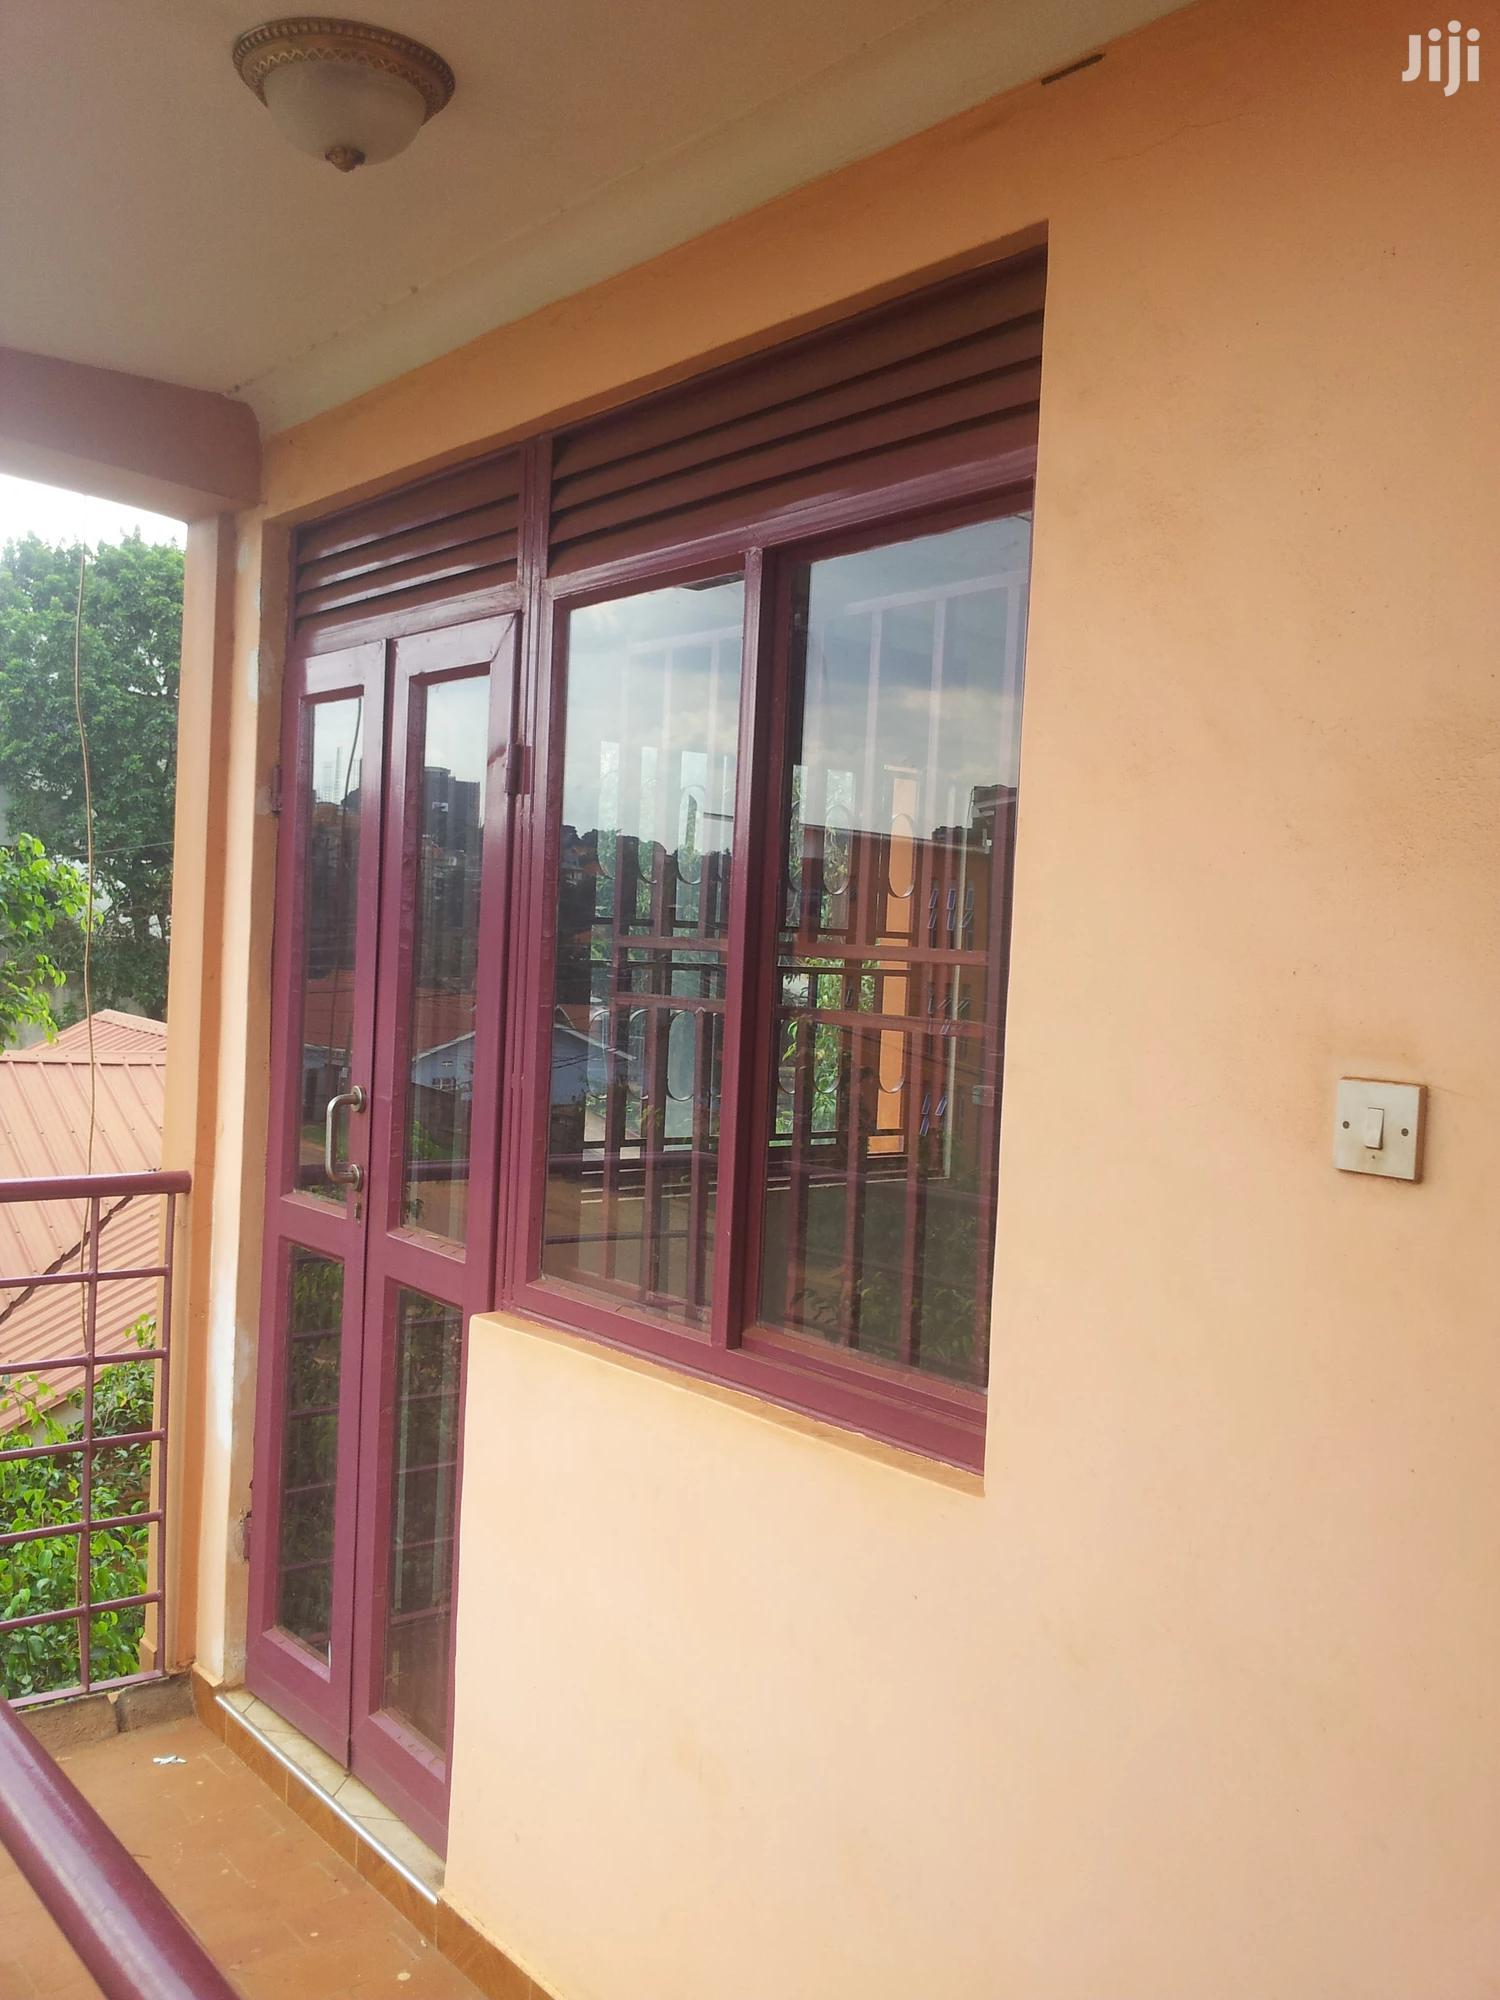 House for Rent at Ntinda